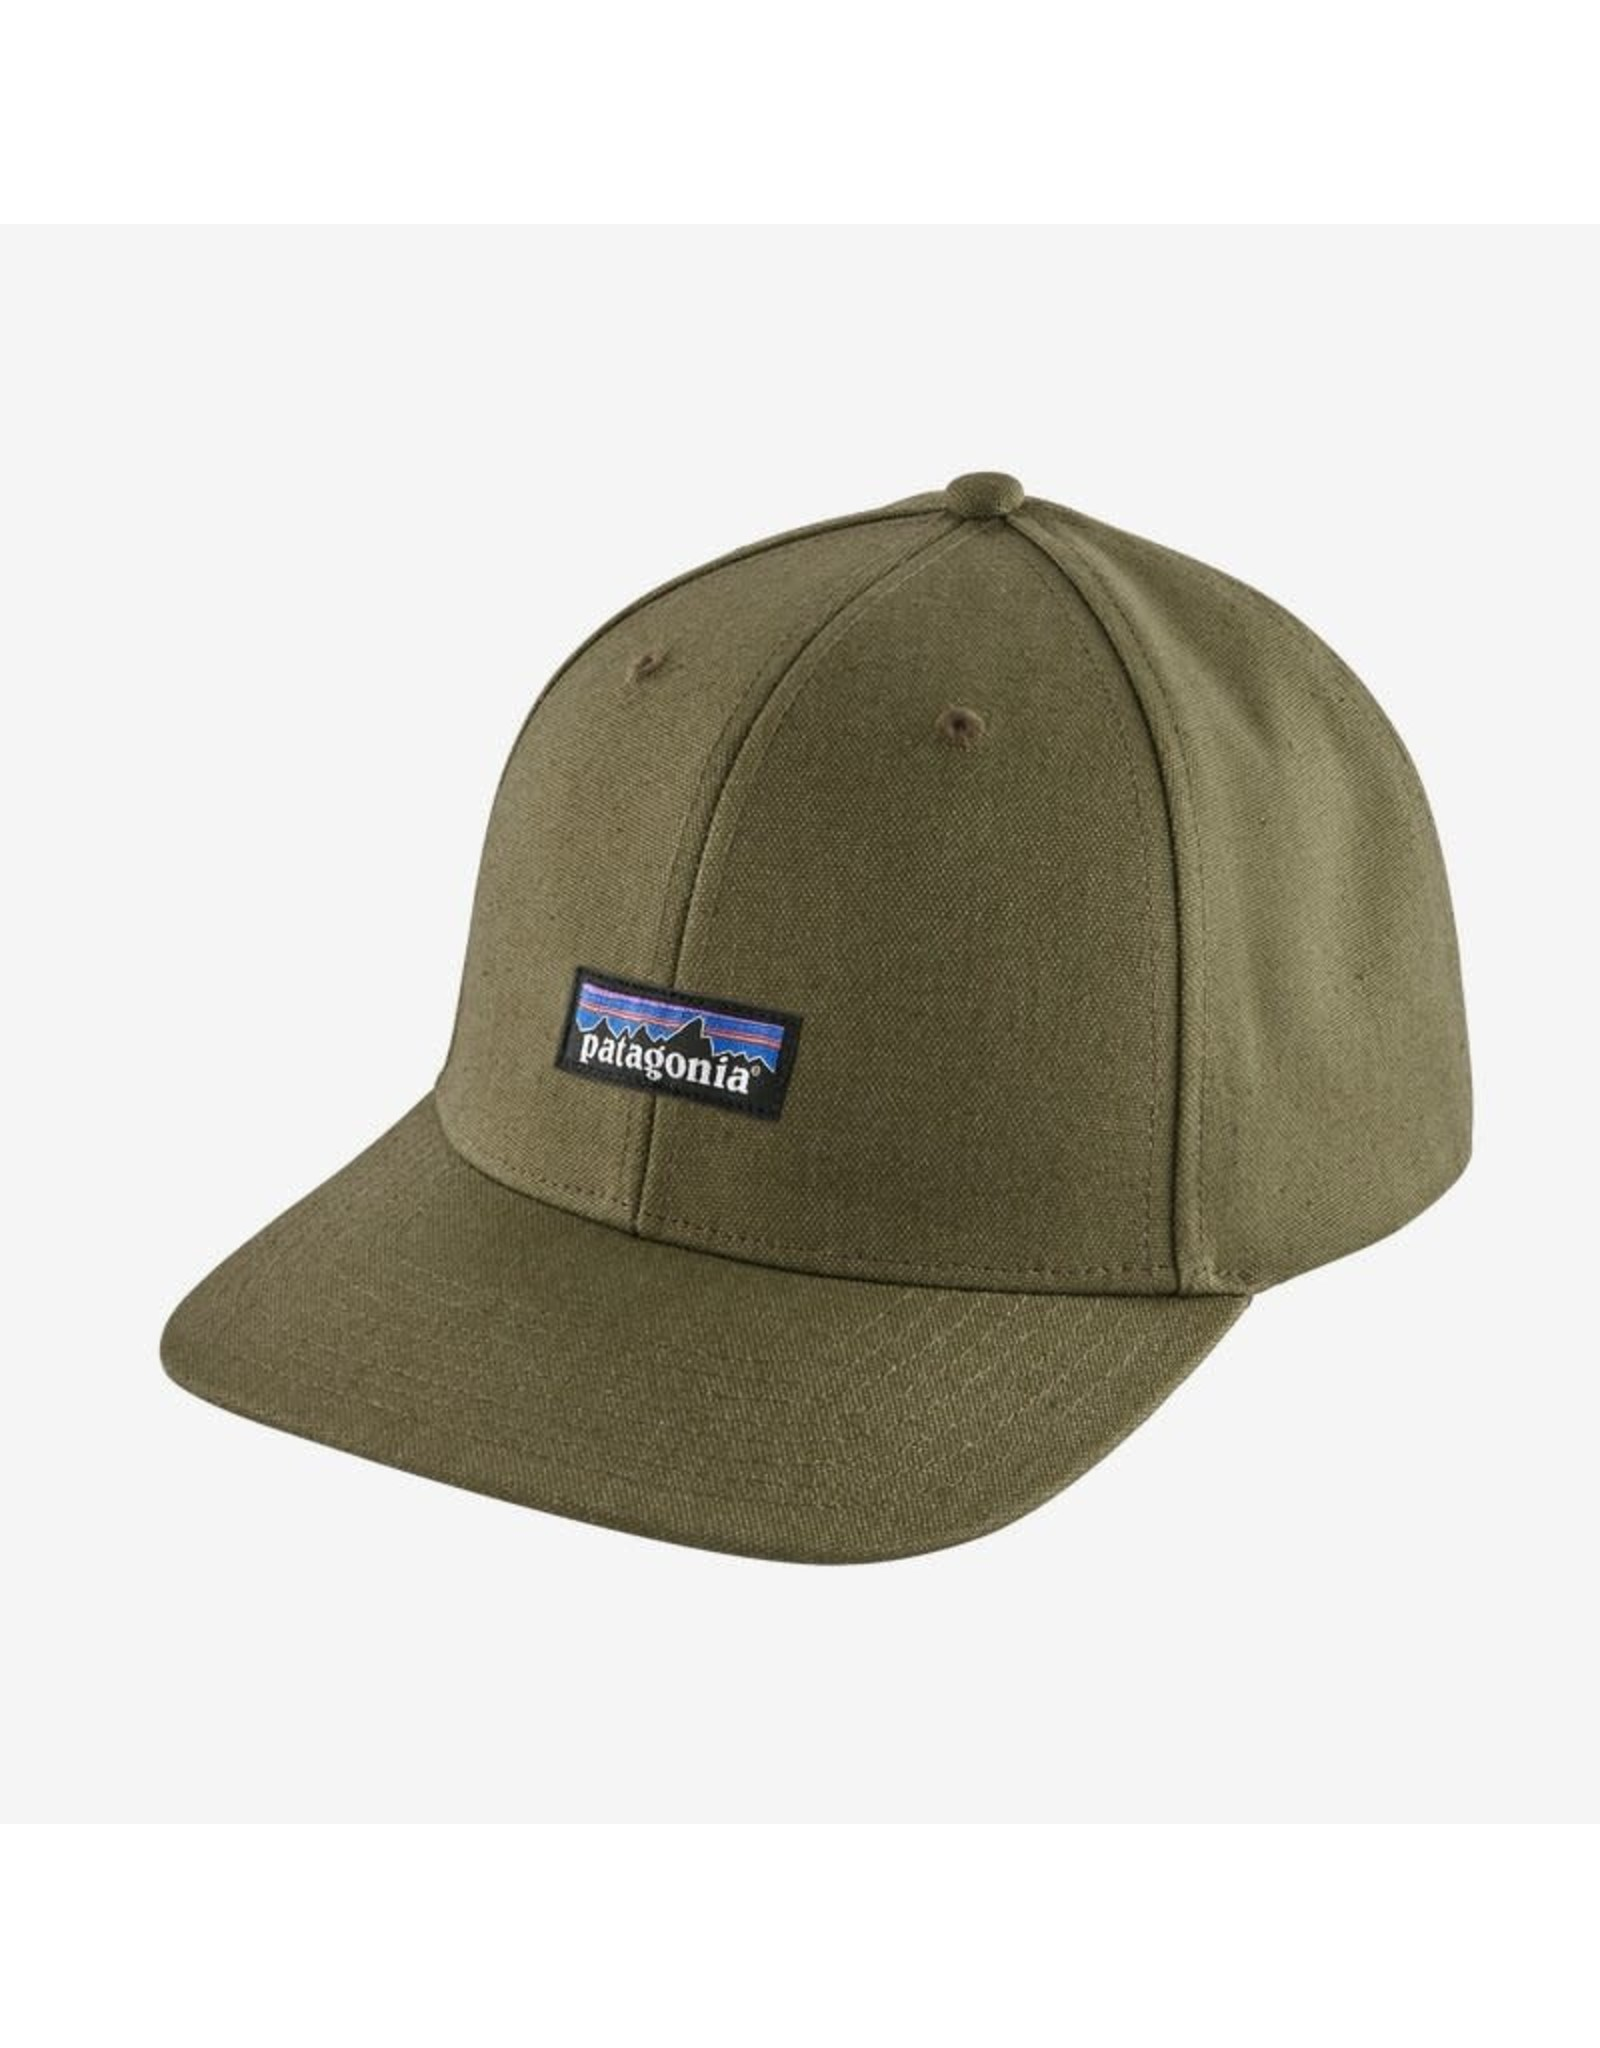 Patagonia Patagonia - Casquette homme tin shed p-6 logo fatigue green